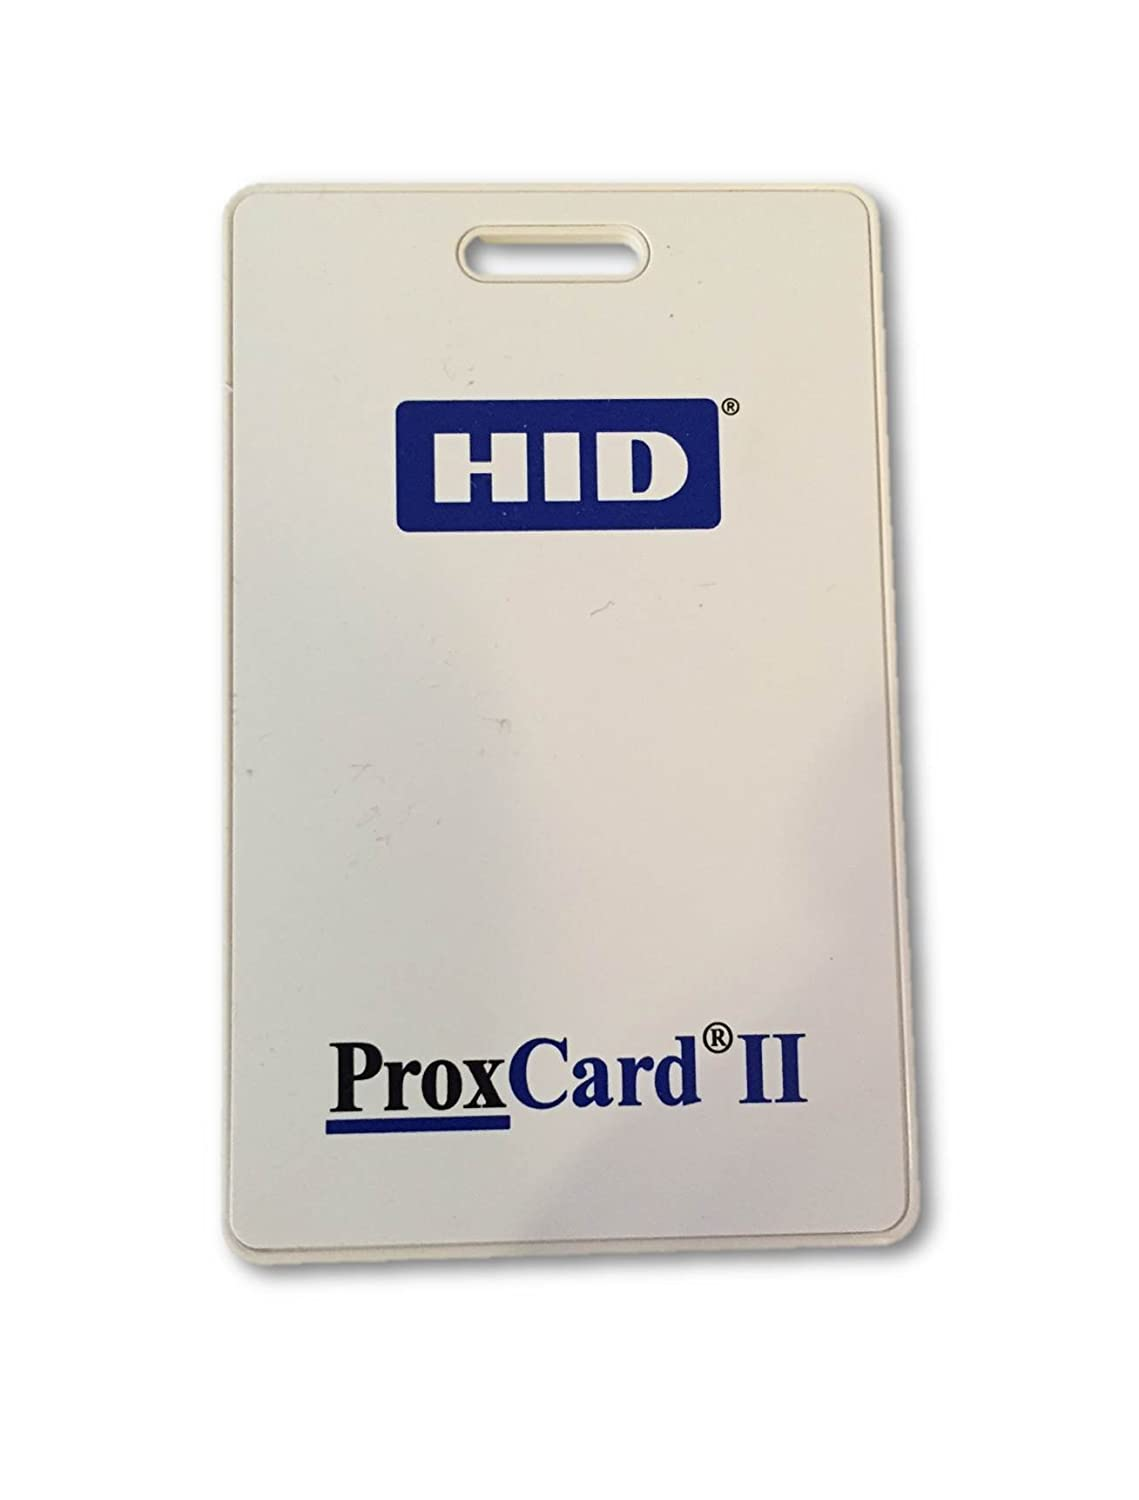 HID 1326 ProxCard II Clamshell Card (50 Pack)